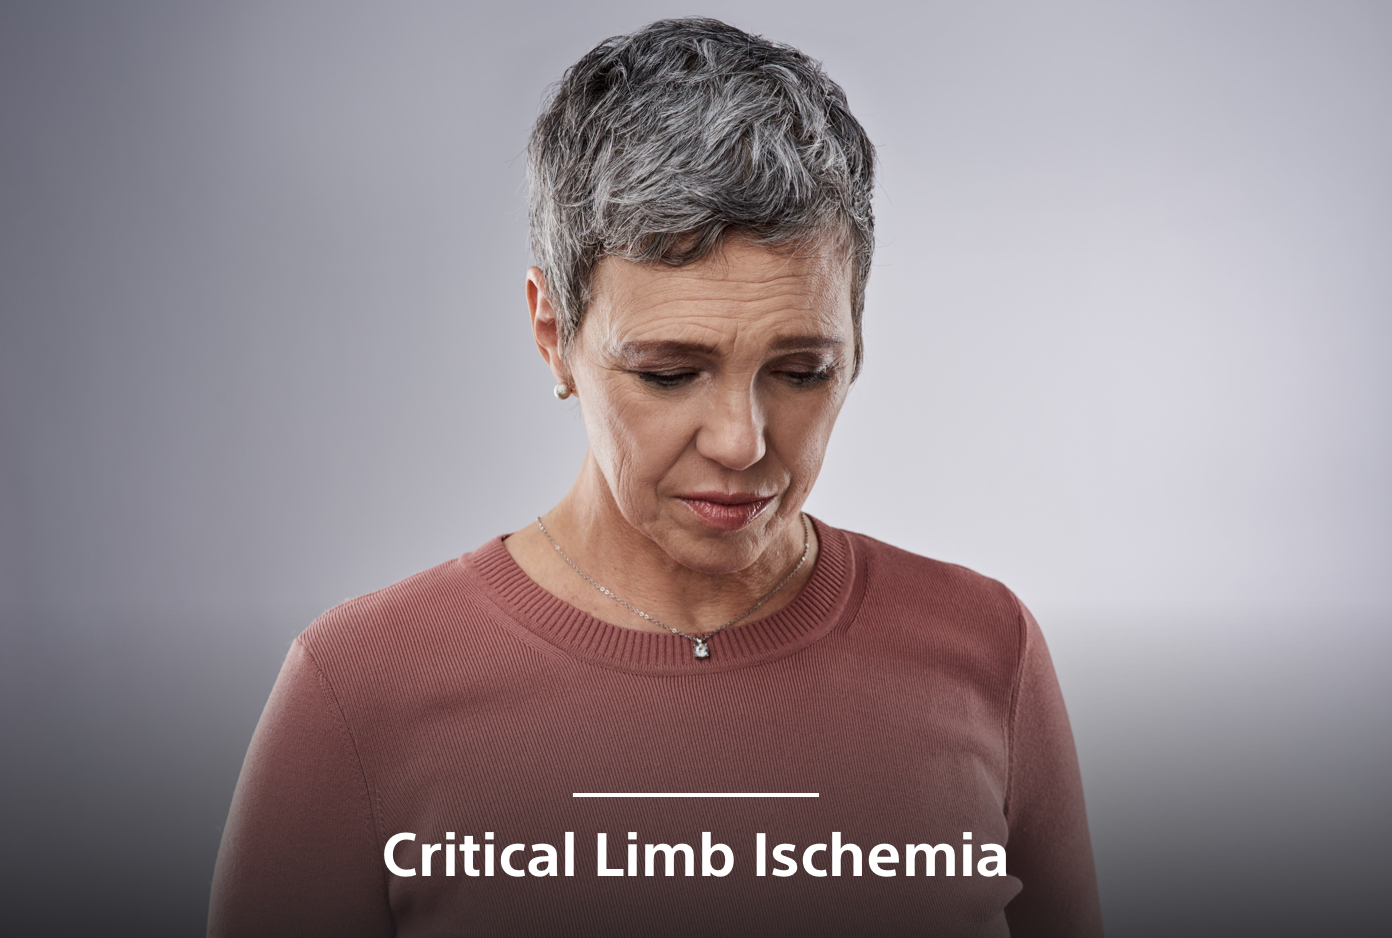 What is Critical Limb Ischemia (CLI)